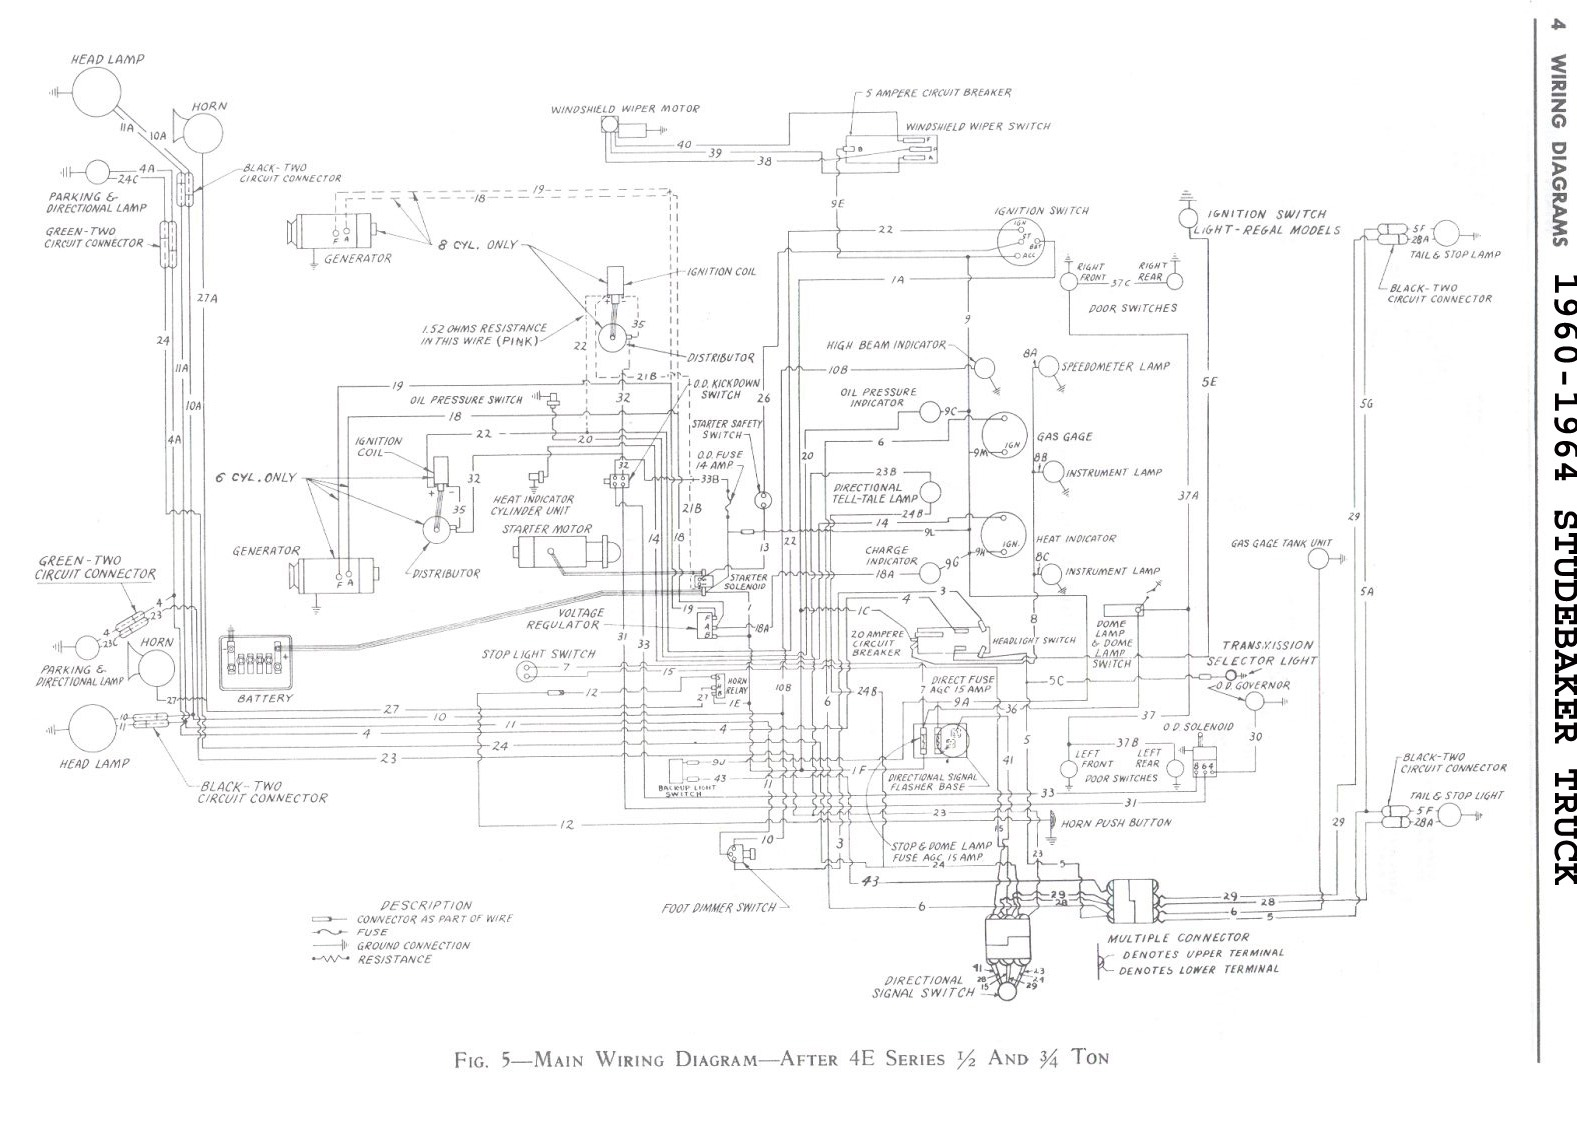 Studebaker Wiring Diagram : 25 Wiring Diagram Images